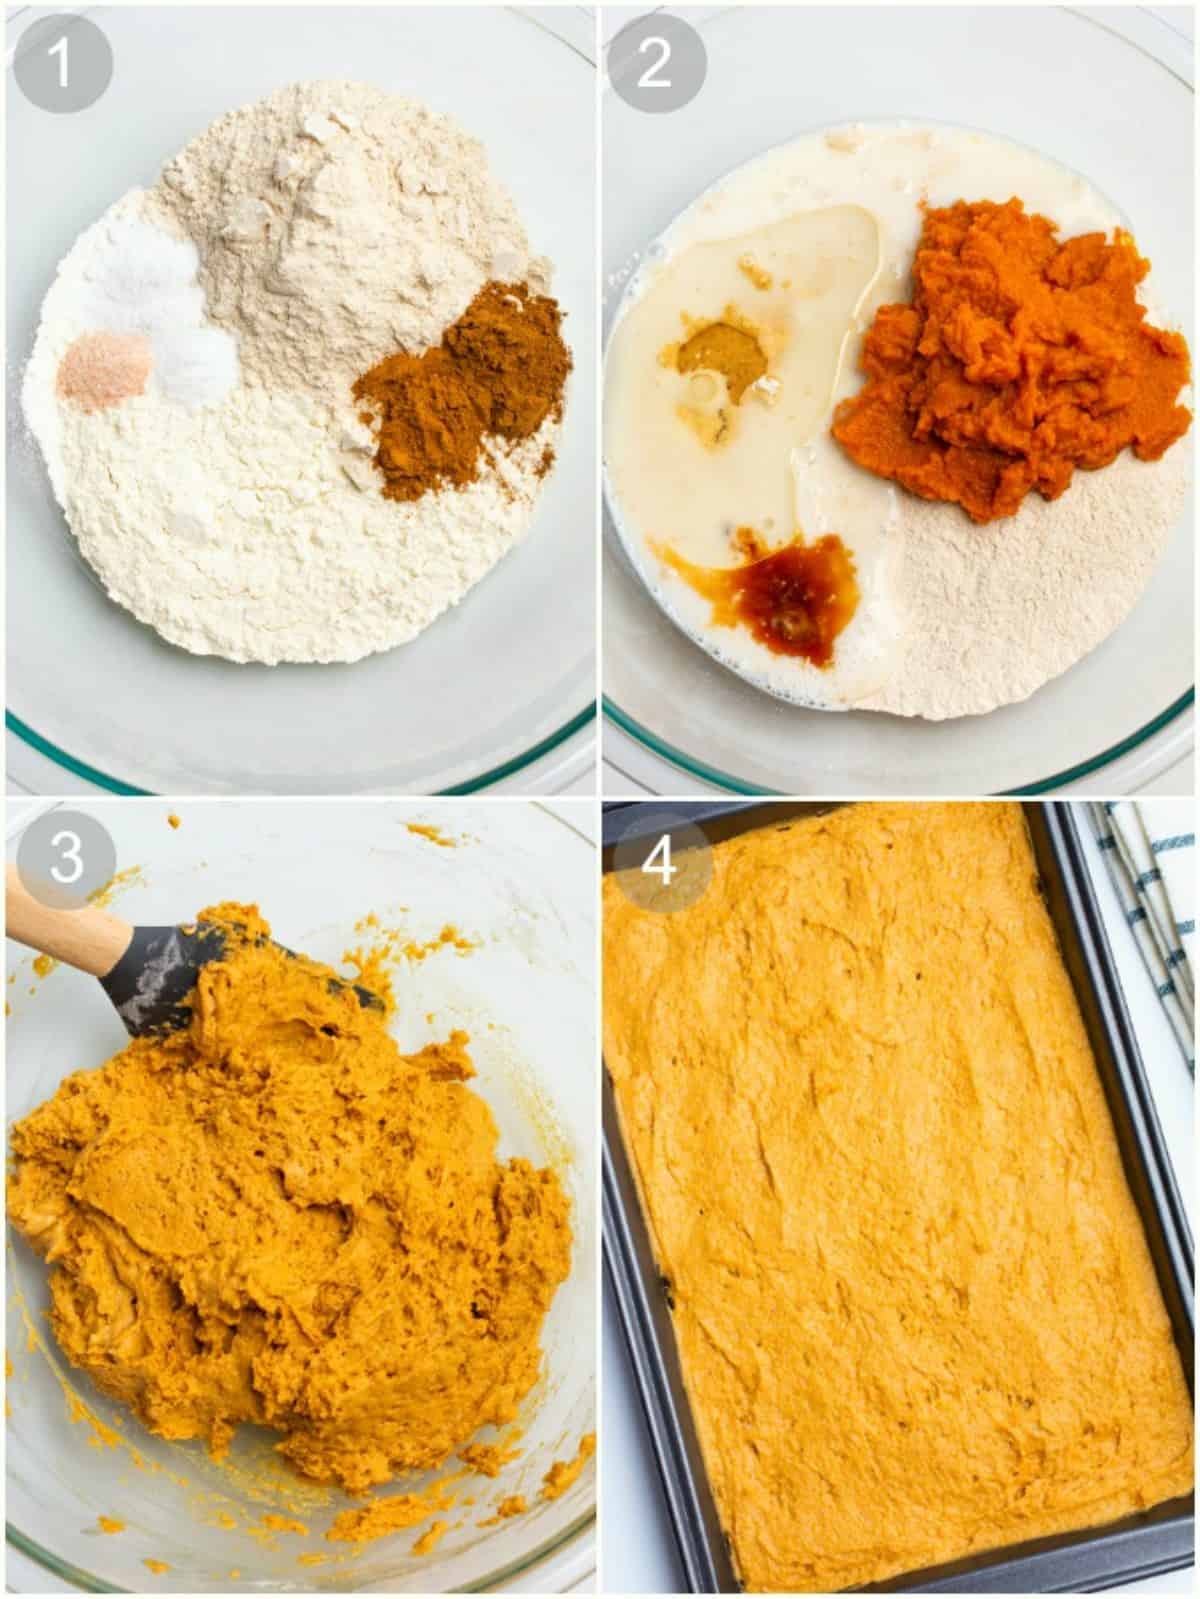 Process steps for making pumpkin cake batter.